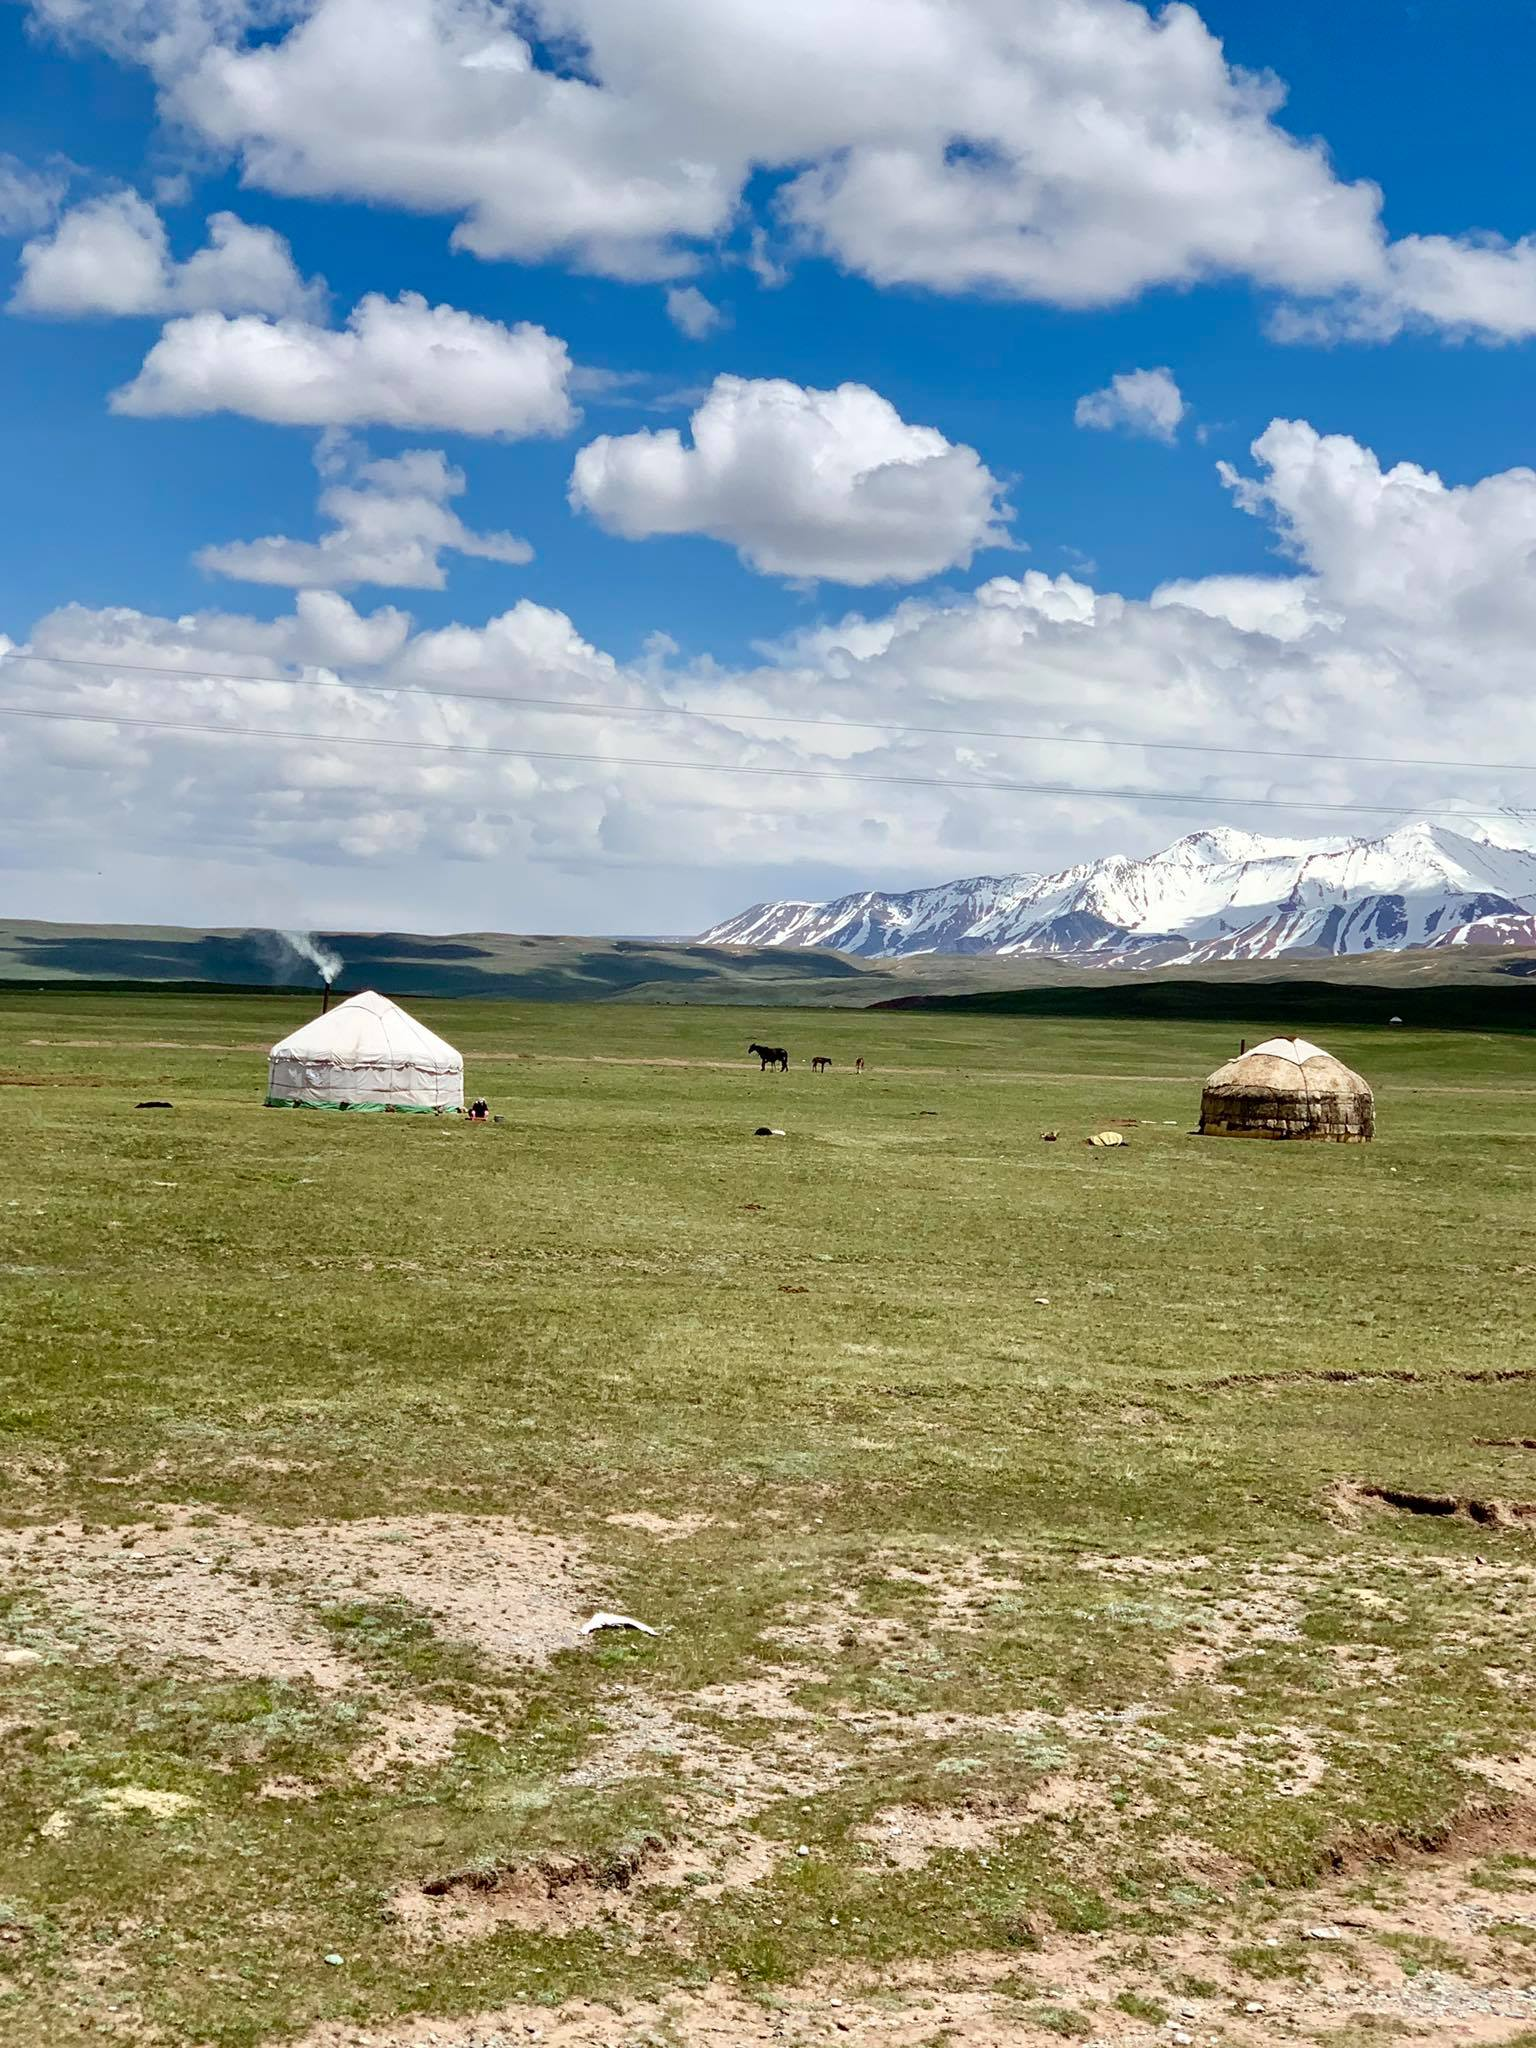 Kach Solo Travels in 2019 Hello from KYRGYZSTAN, my 128th country10.jpg